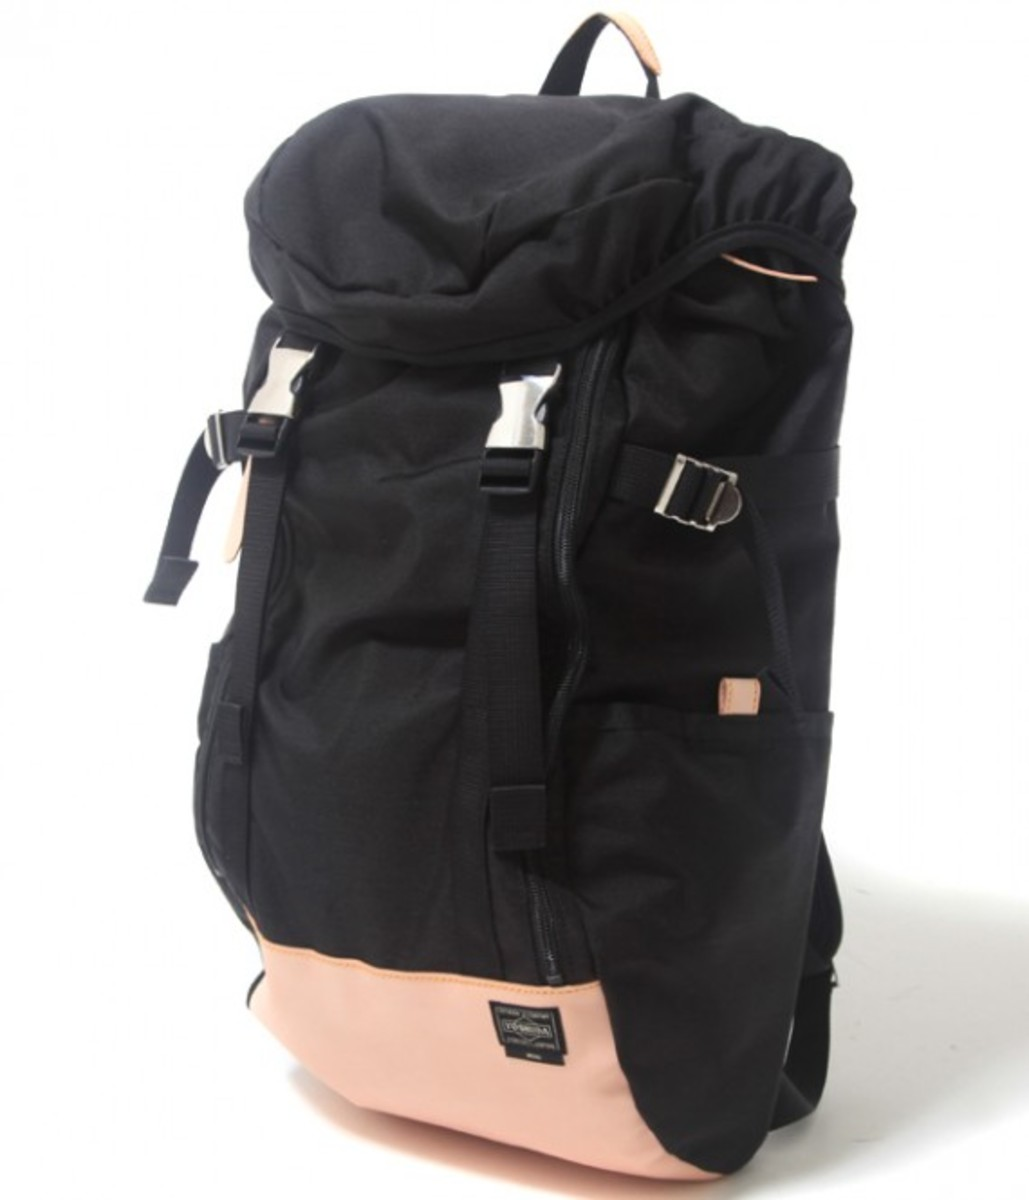 Vegetable Tanned Nylon Ruck Sack